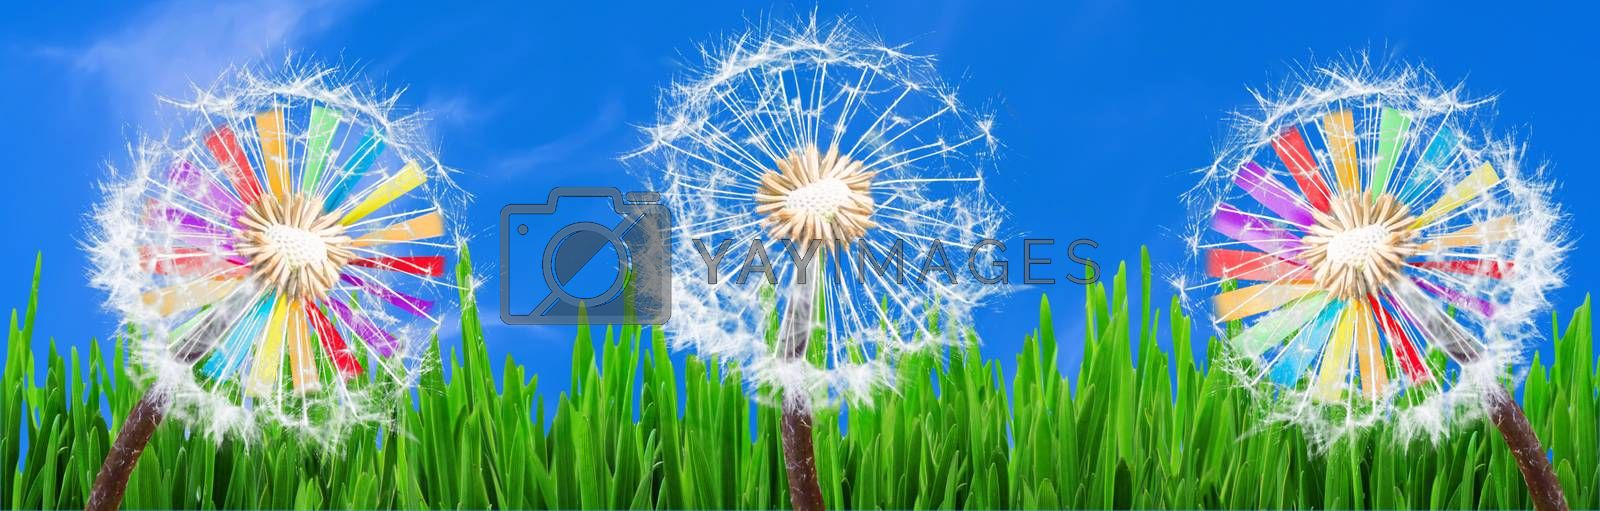 Panorama, Dandelions in the grass against a blue sky and 2 colorful windmills.